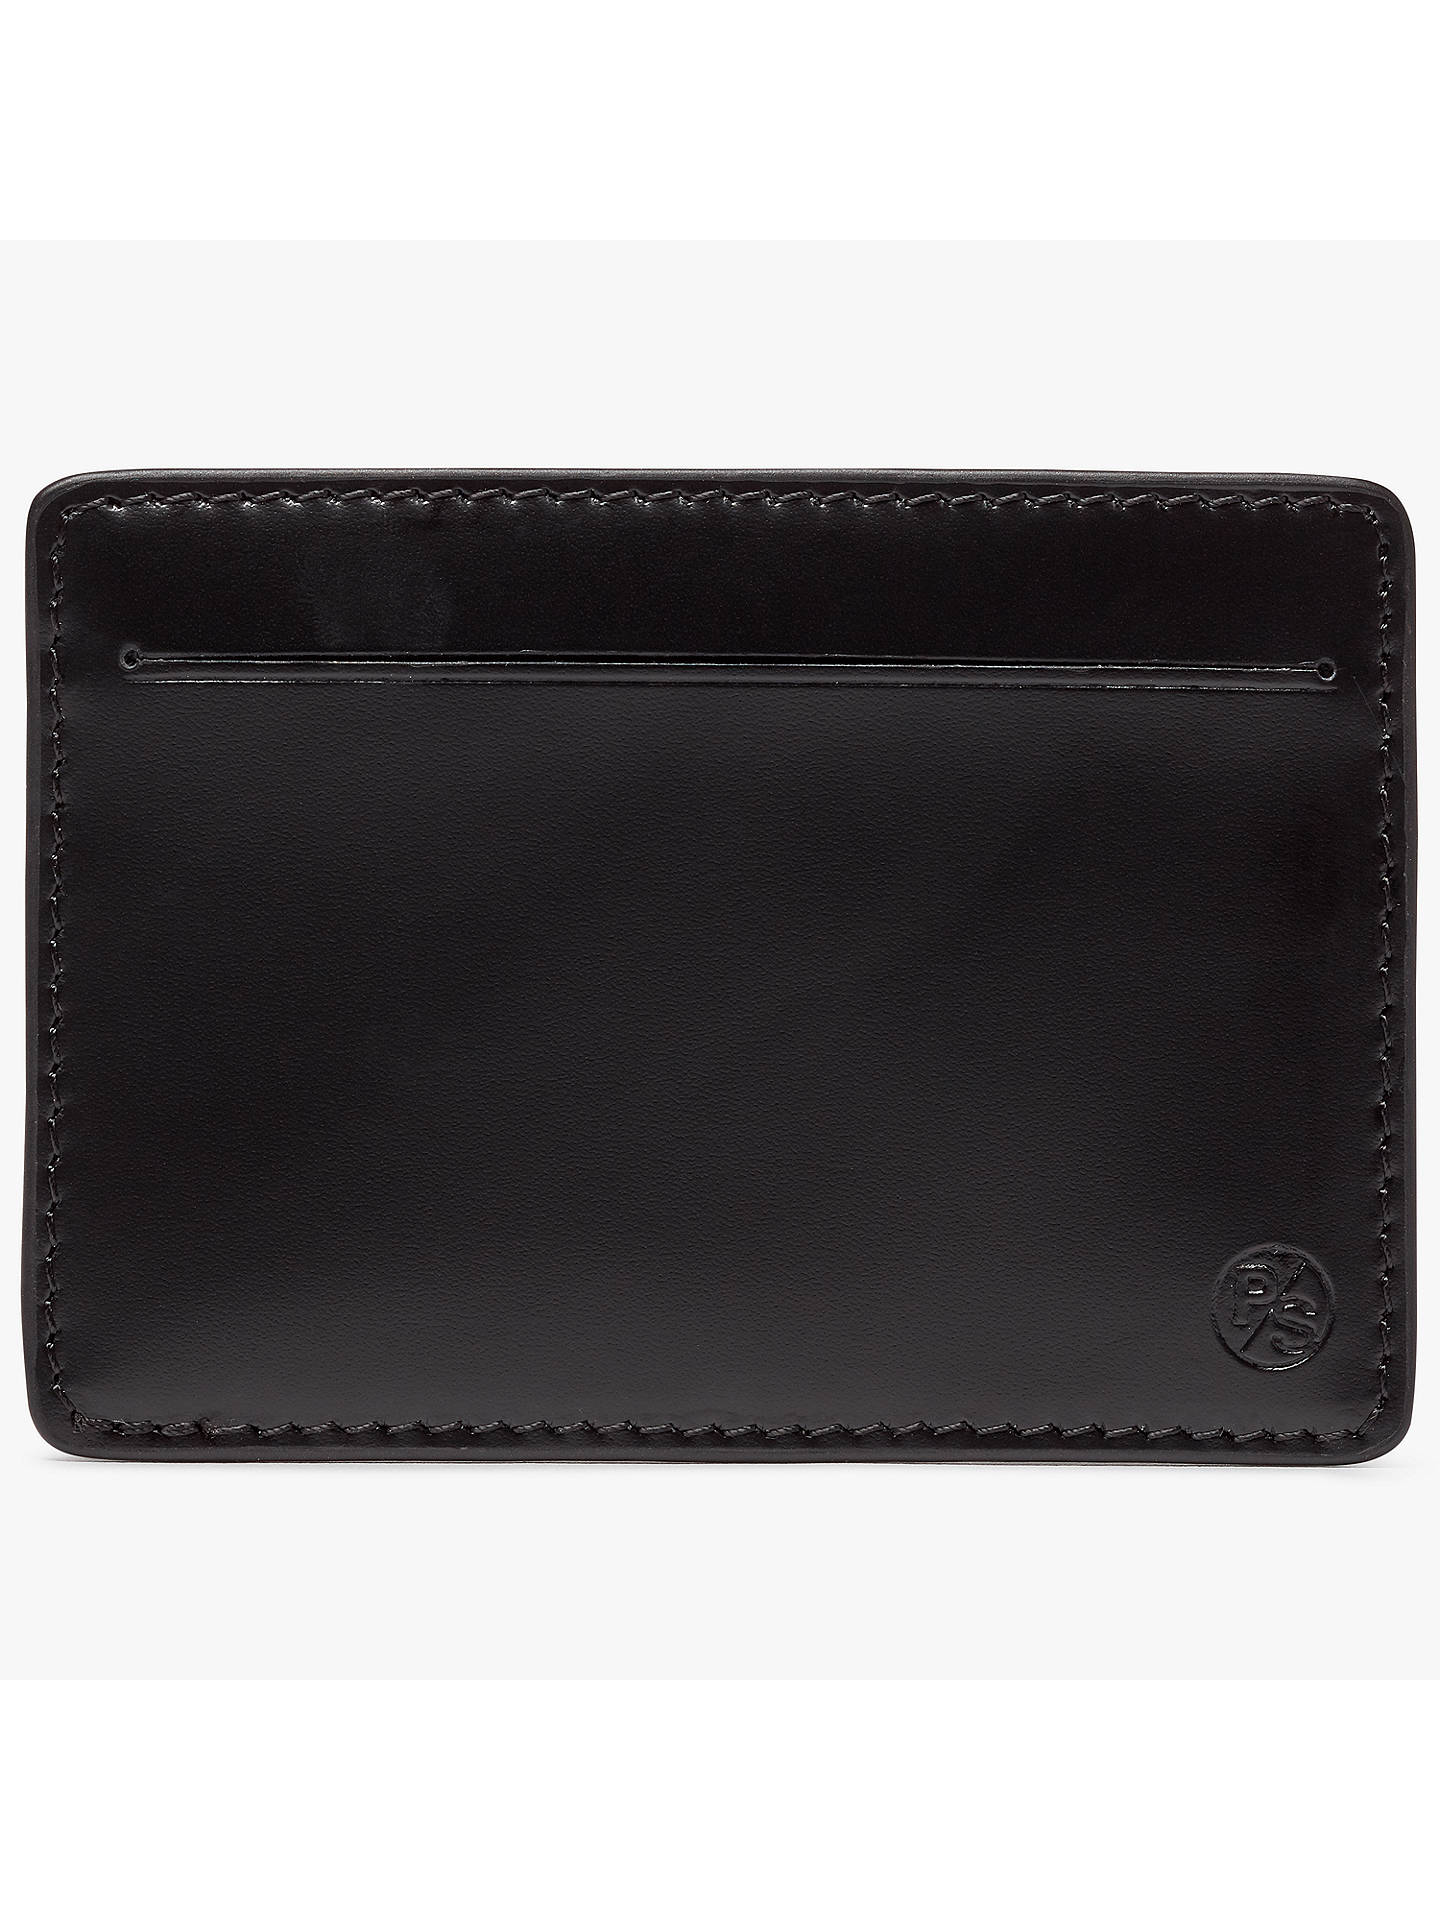 Cyclist leather card holder wallet